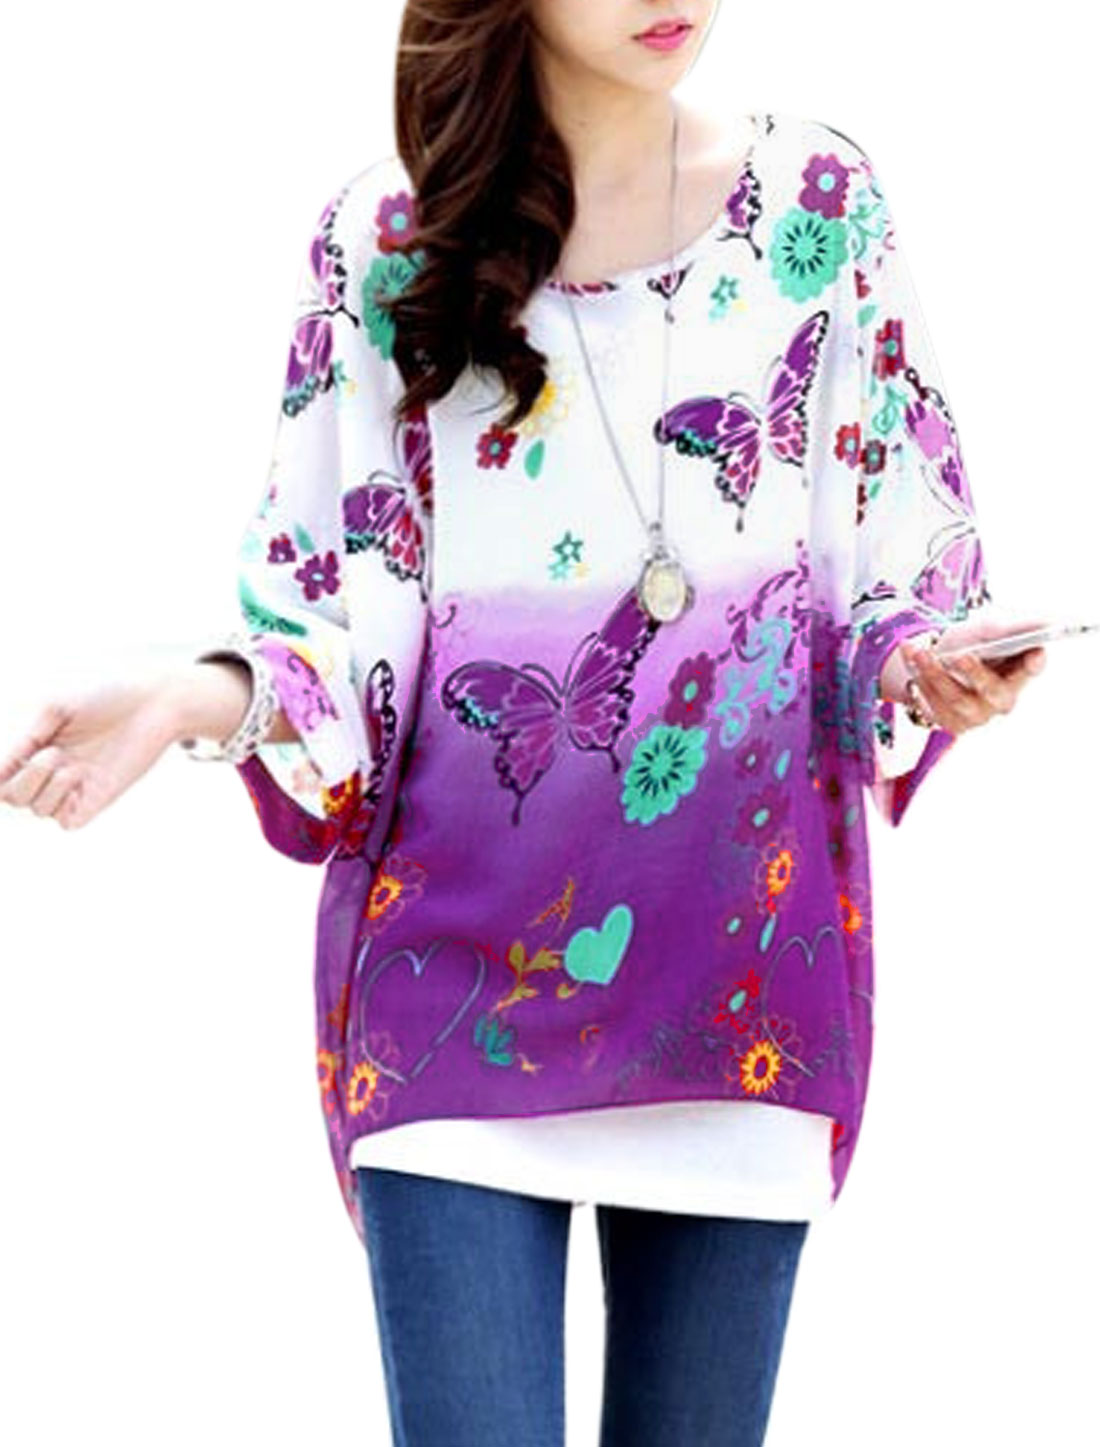 Lady Floral Butterfly Print Bat Sleeve Semi Sheer Chiffon Blouse Purple White S